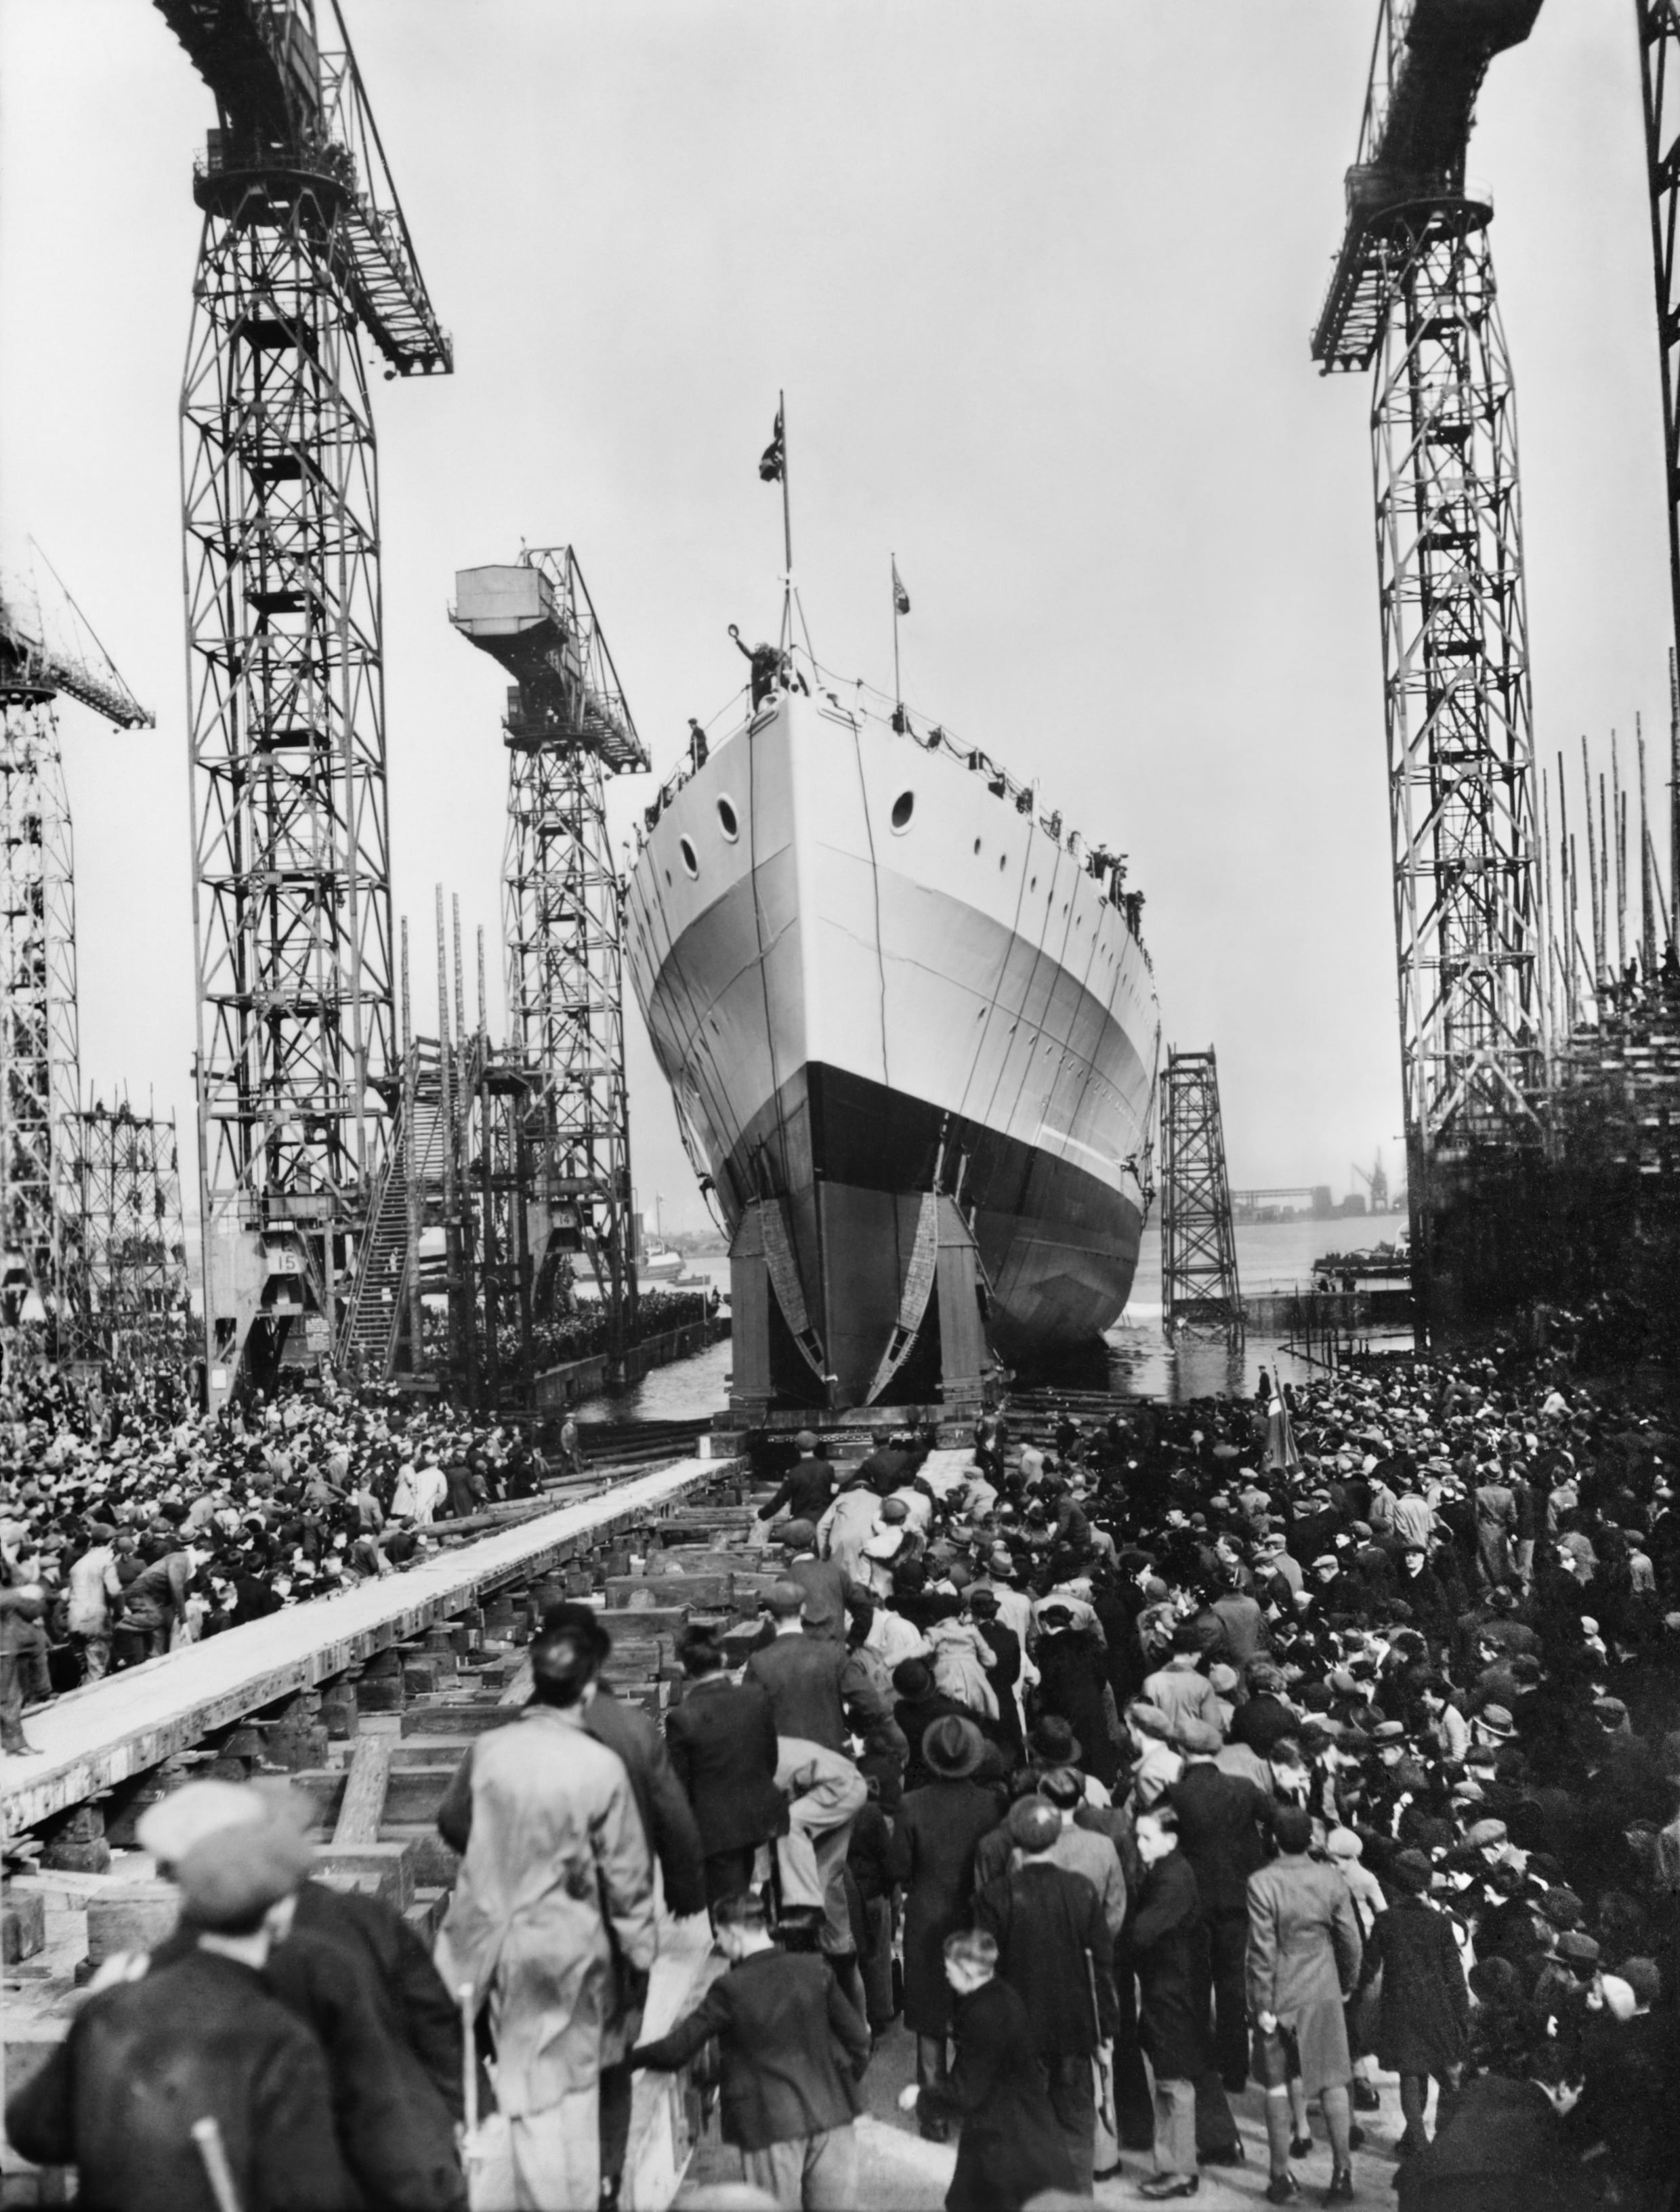 HMS Belfast launched